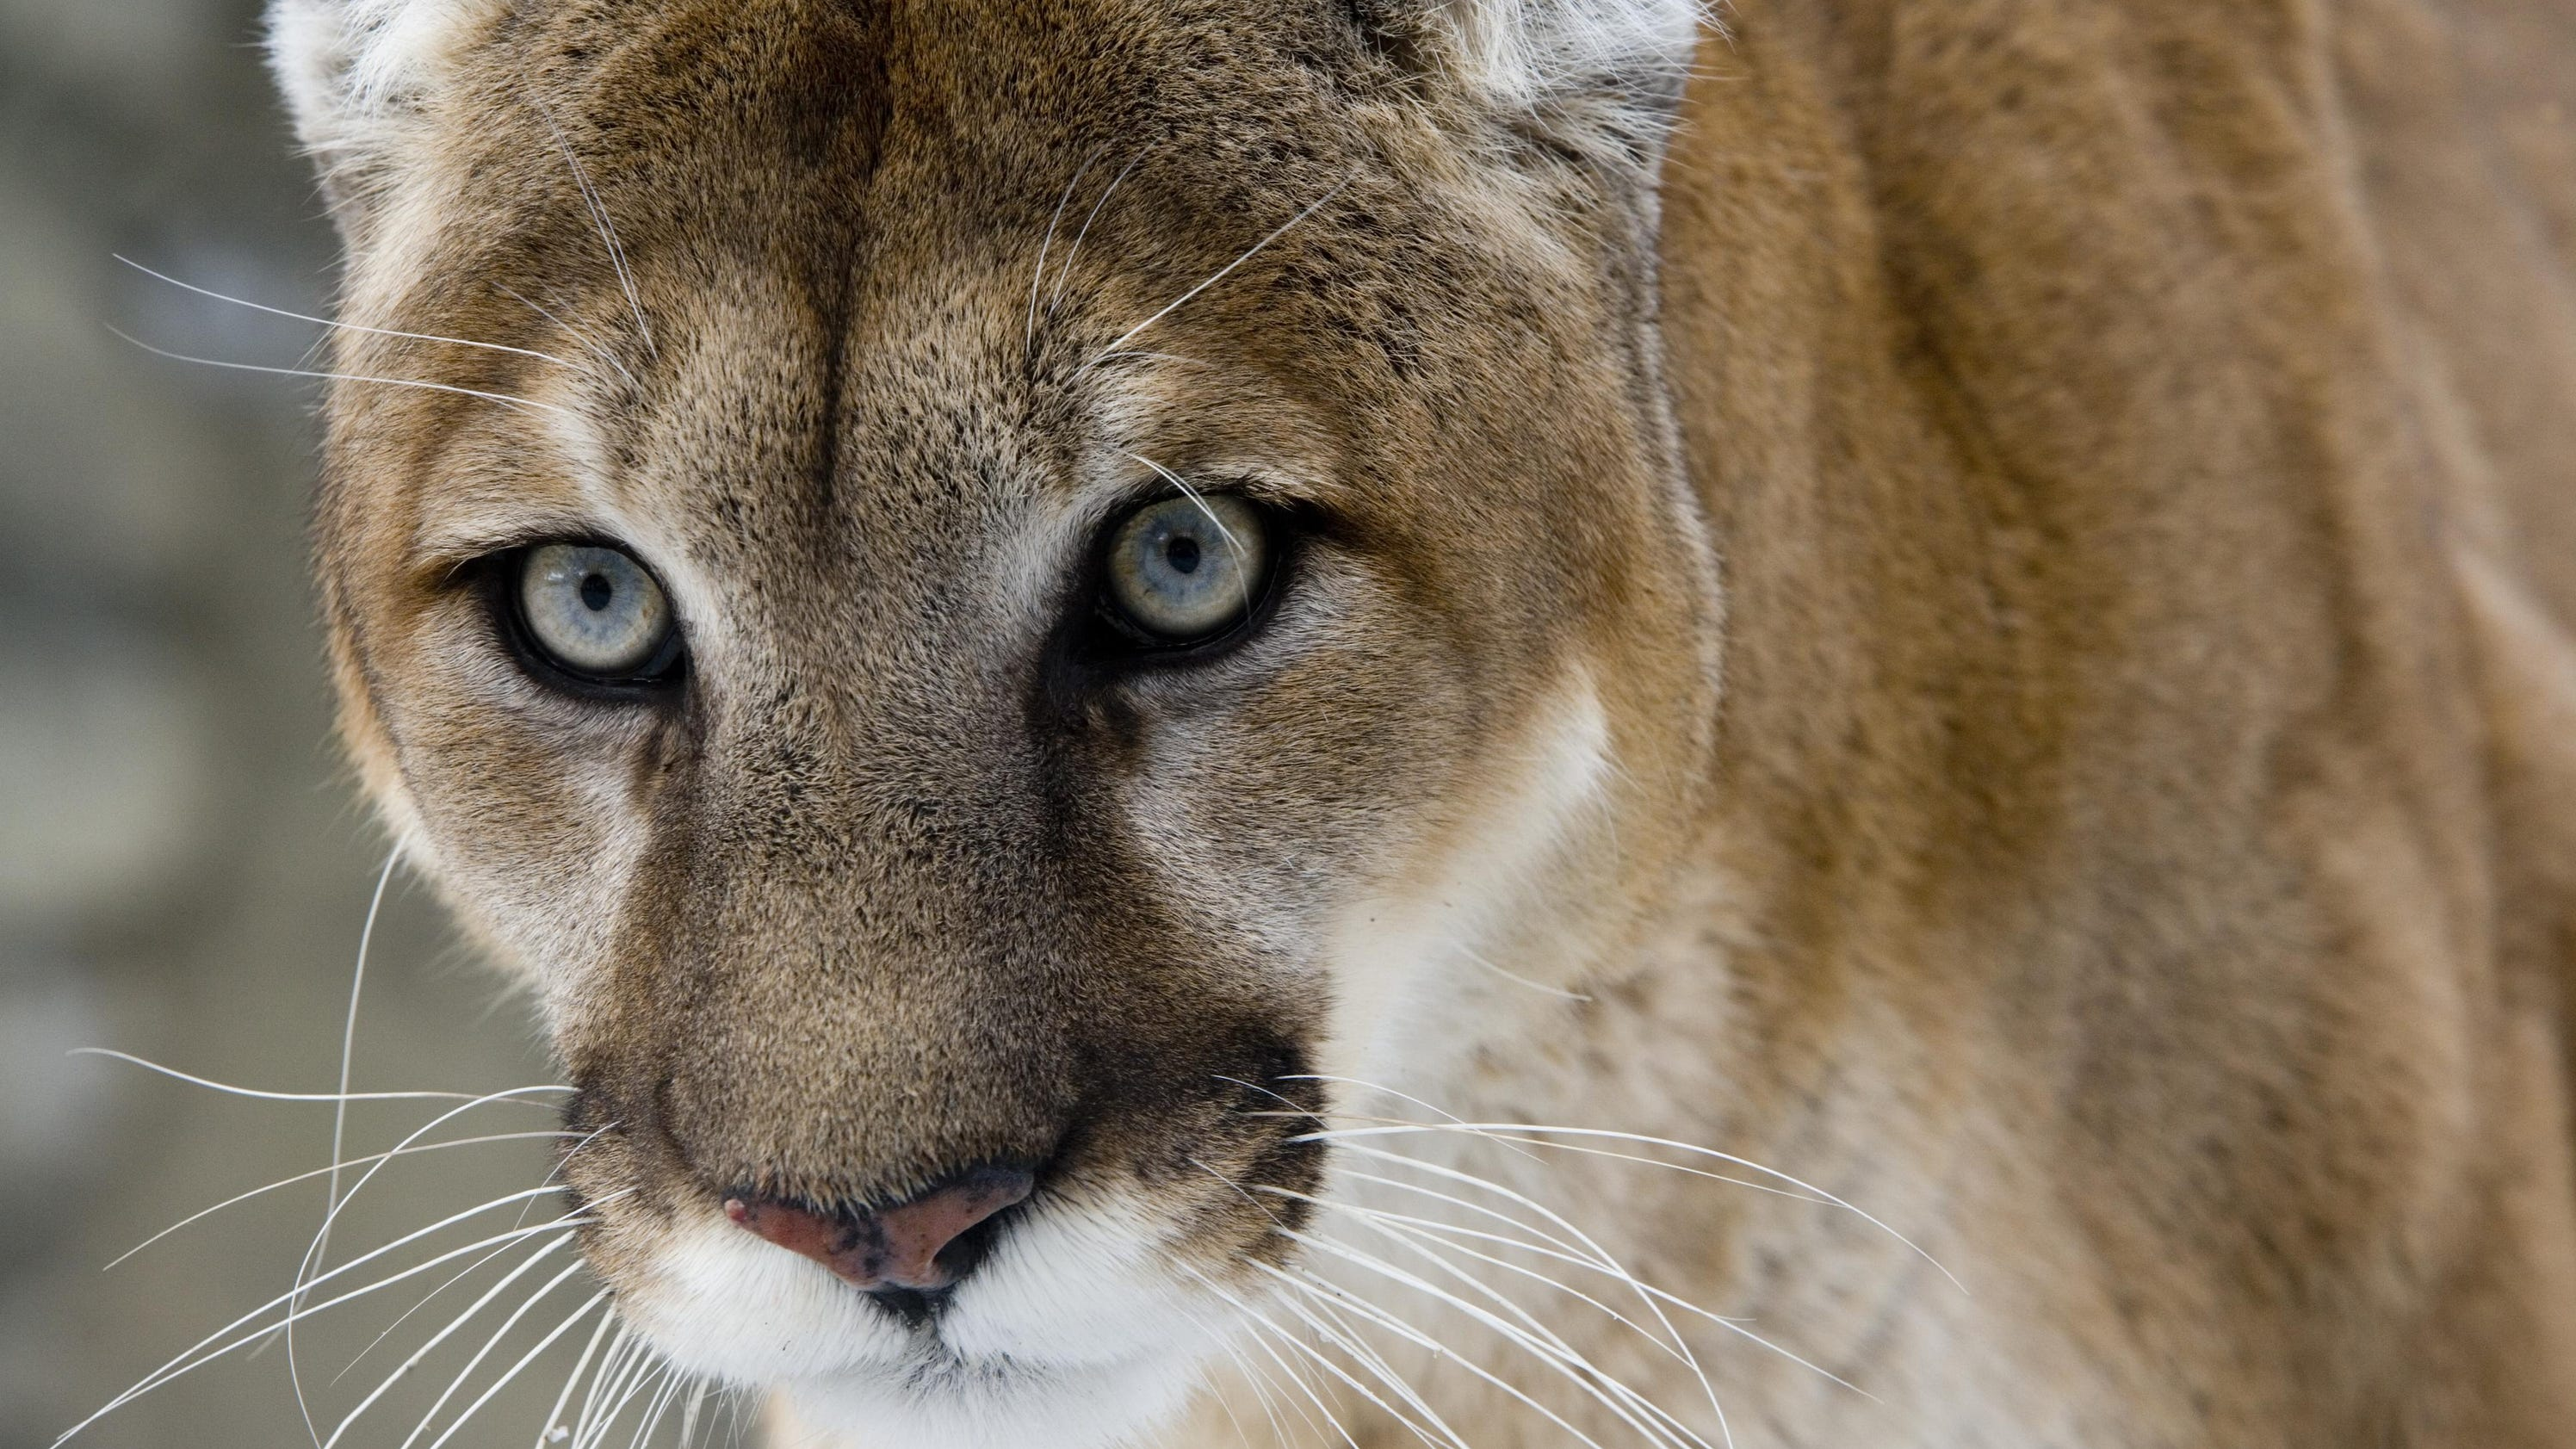 Cougars in the wild in New York? Not yet, the state says